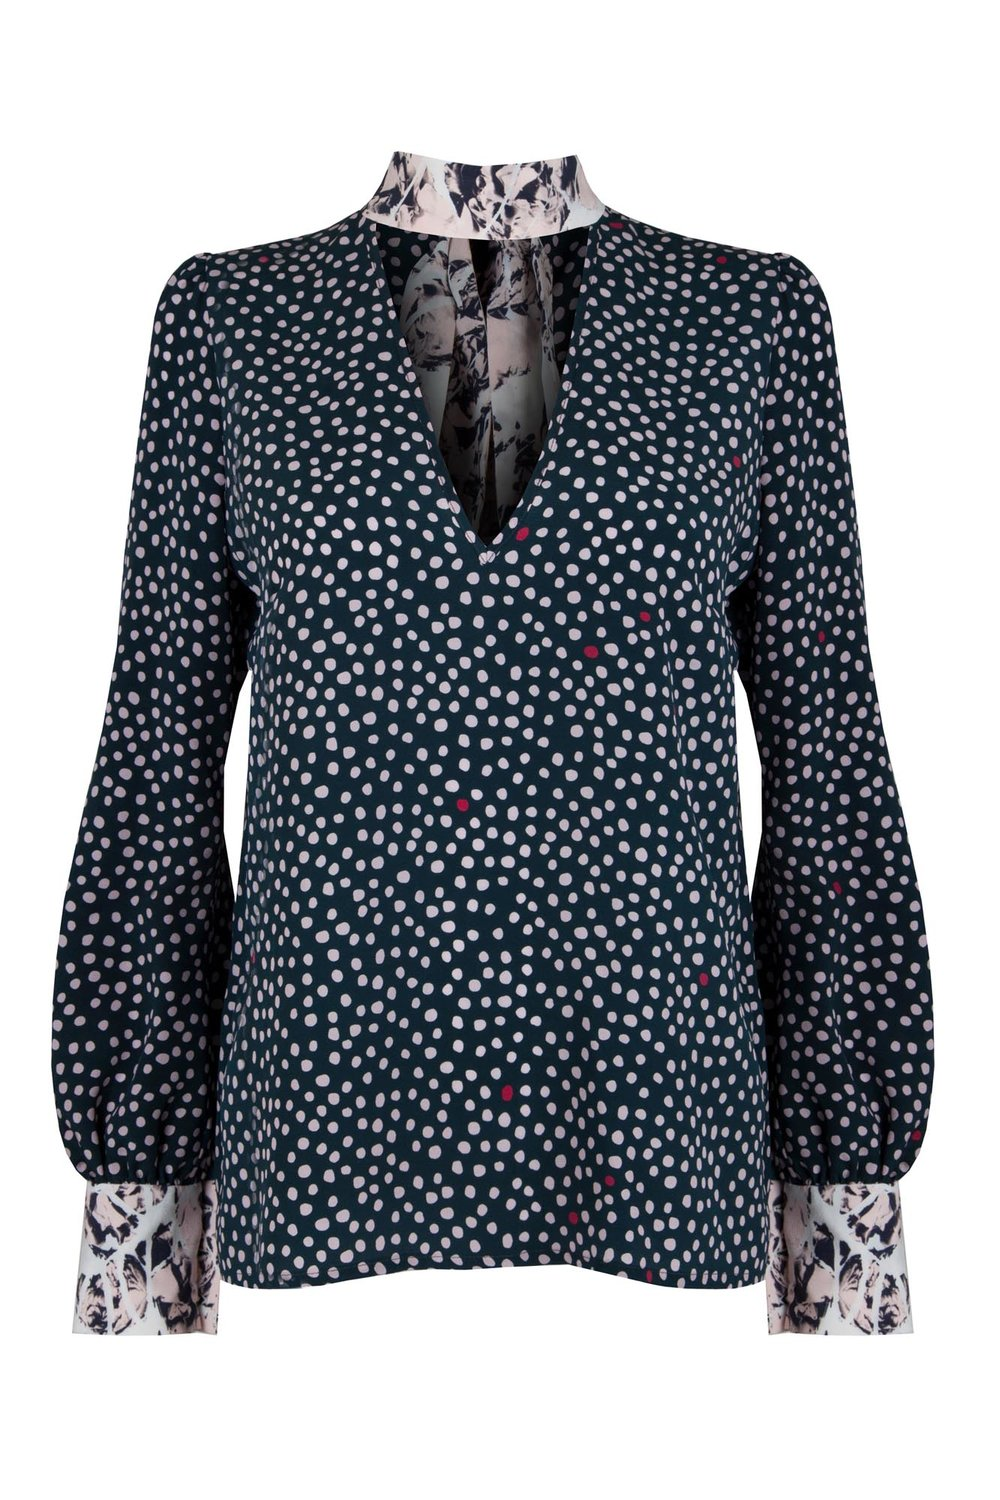 Tori Polka Play blouse